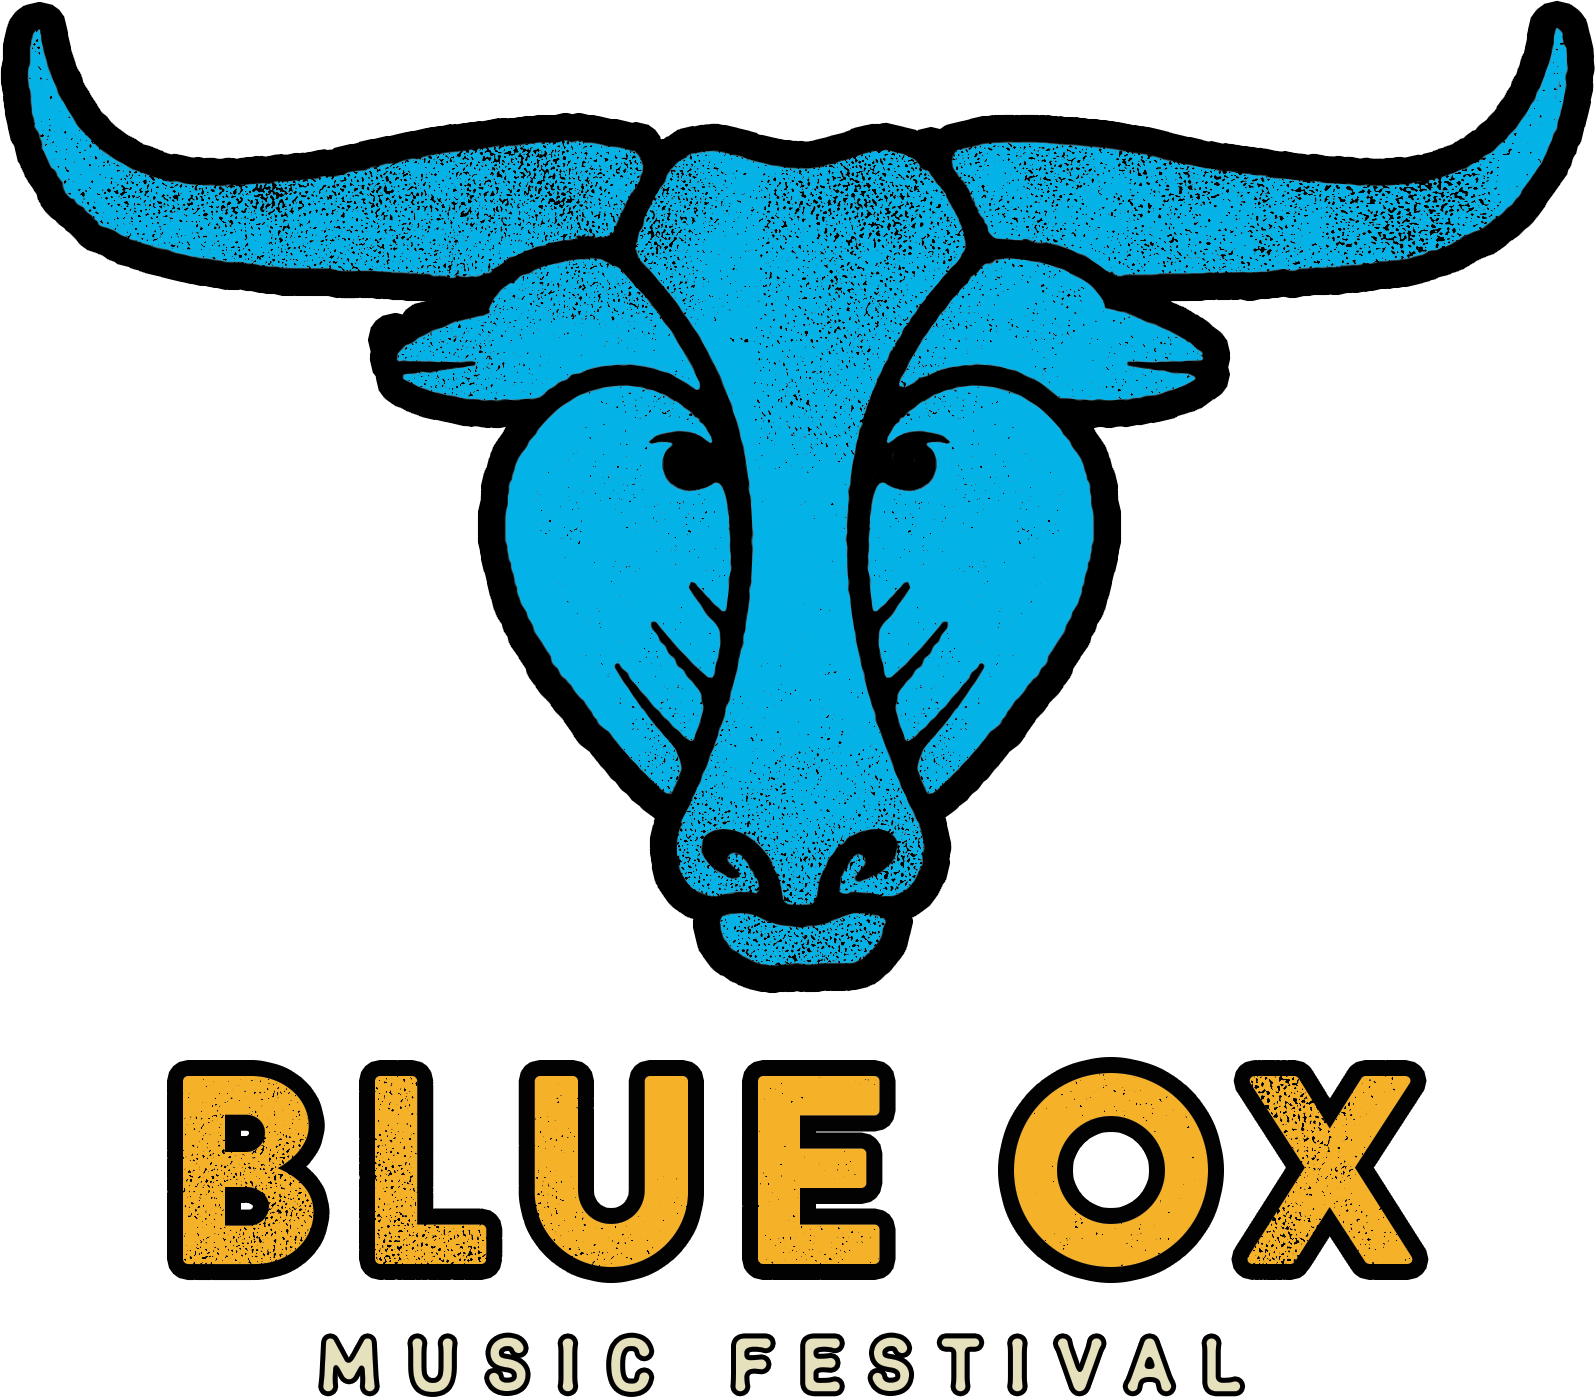 Blue_ox_label_transparent__1_